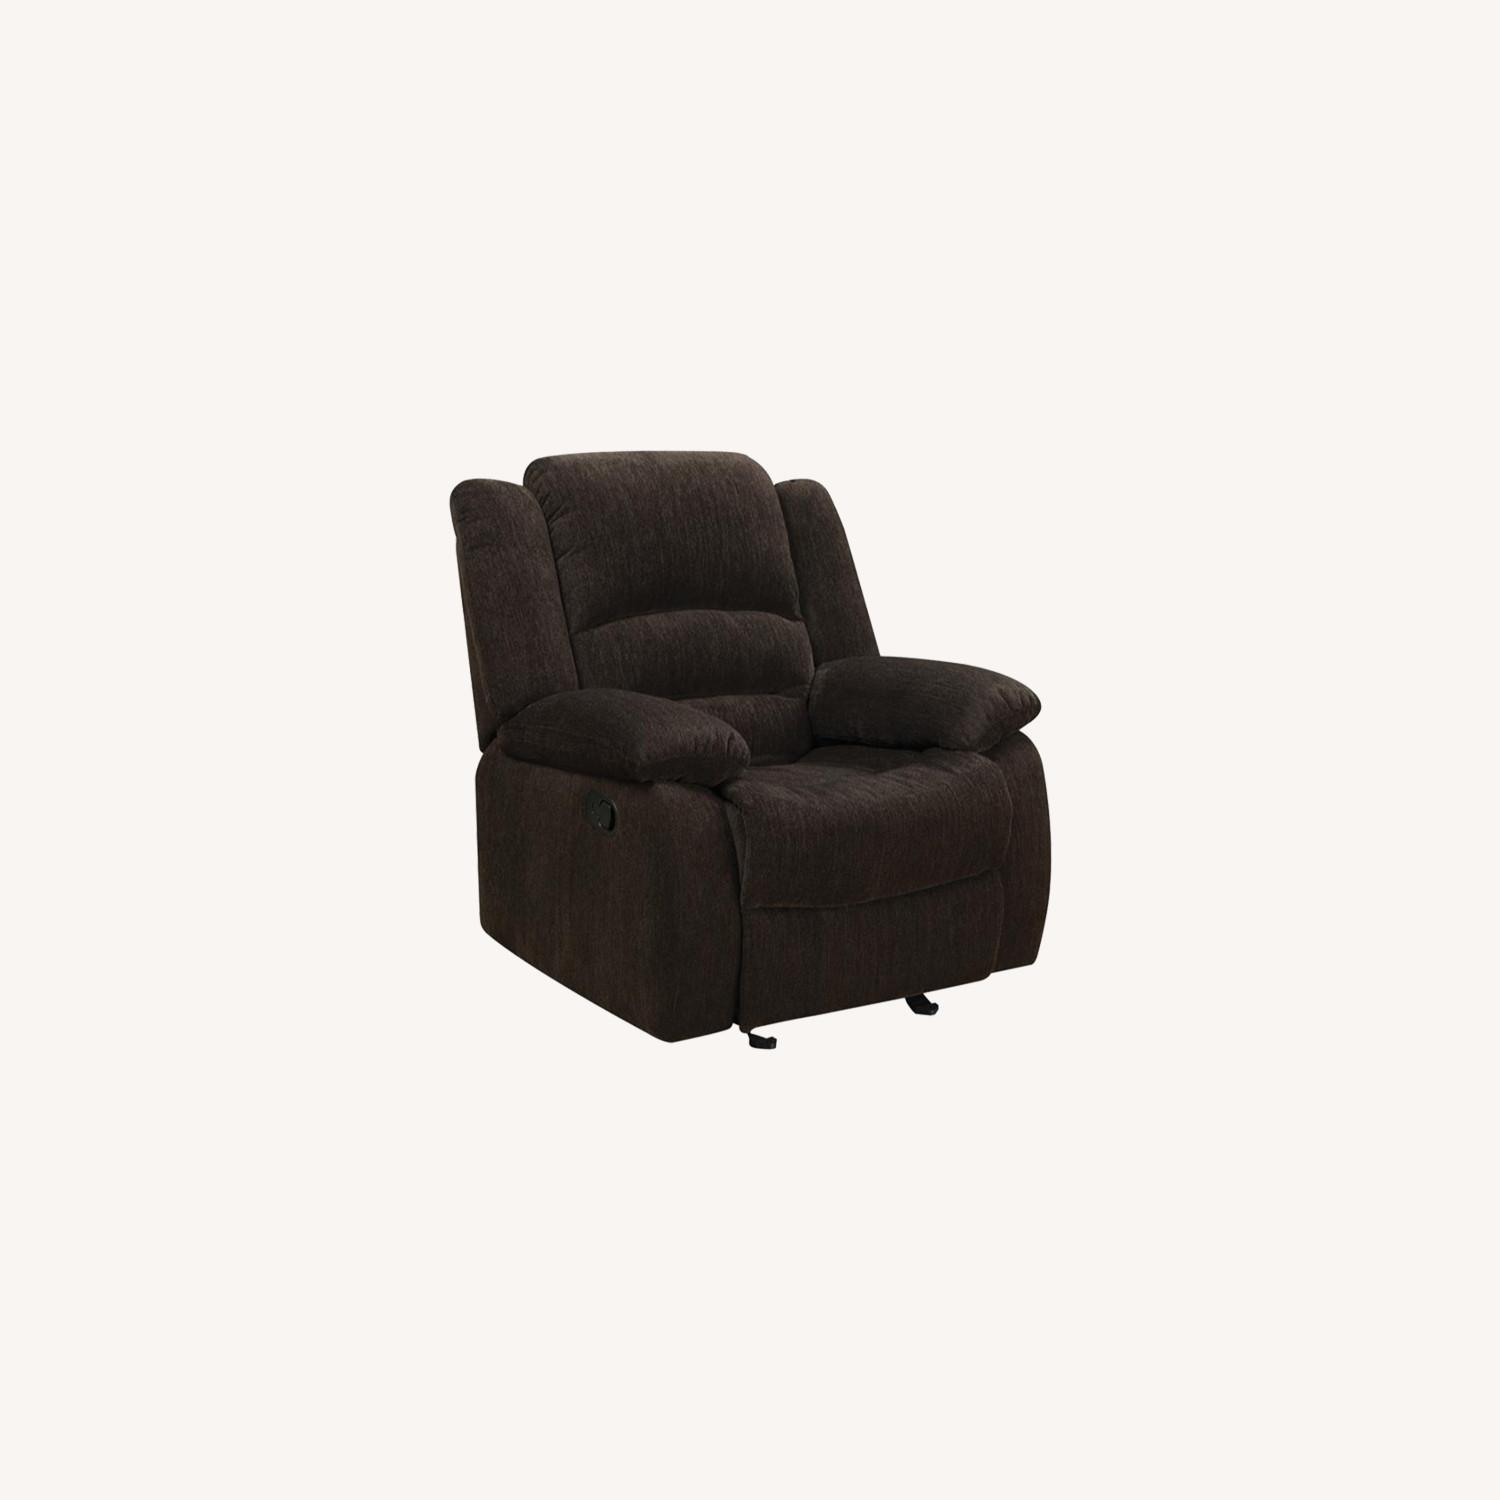 Glider Recliner In Chocolate Chenille Fabric - image-4